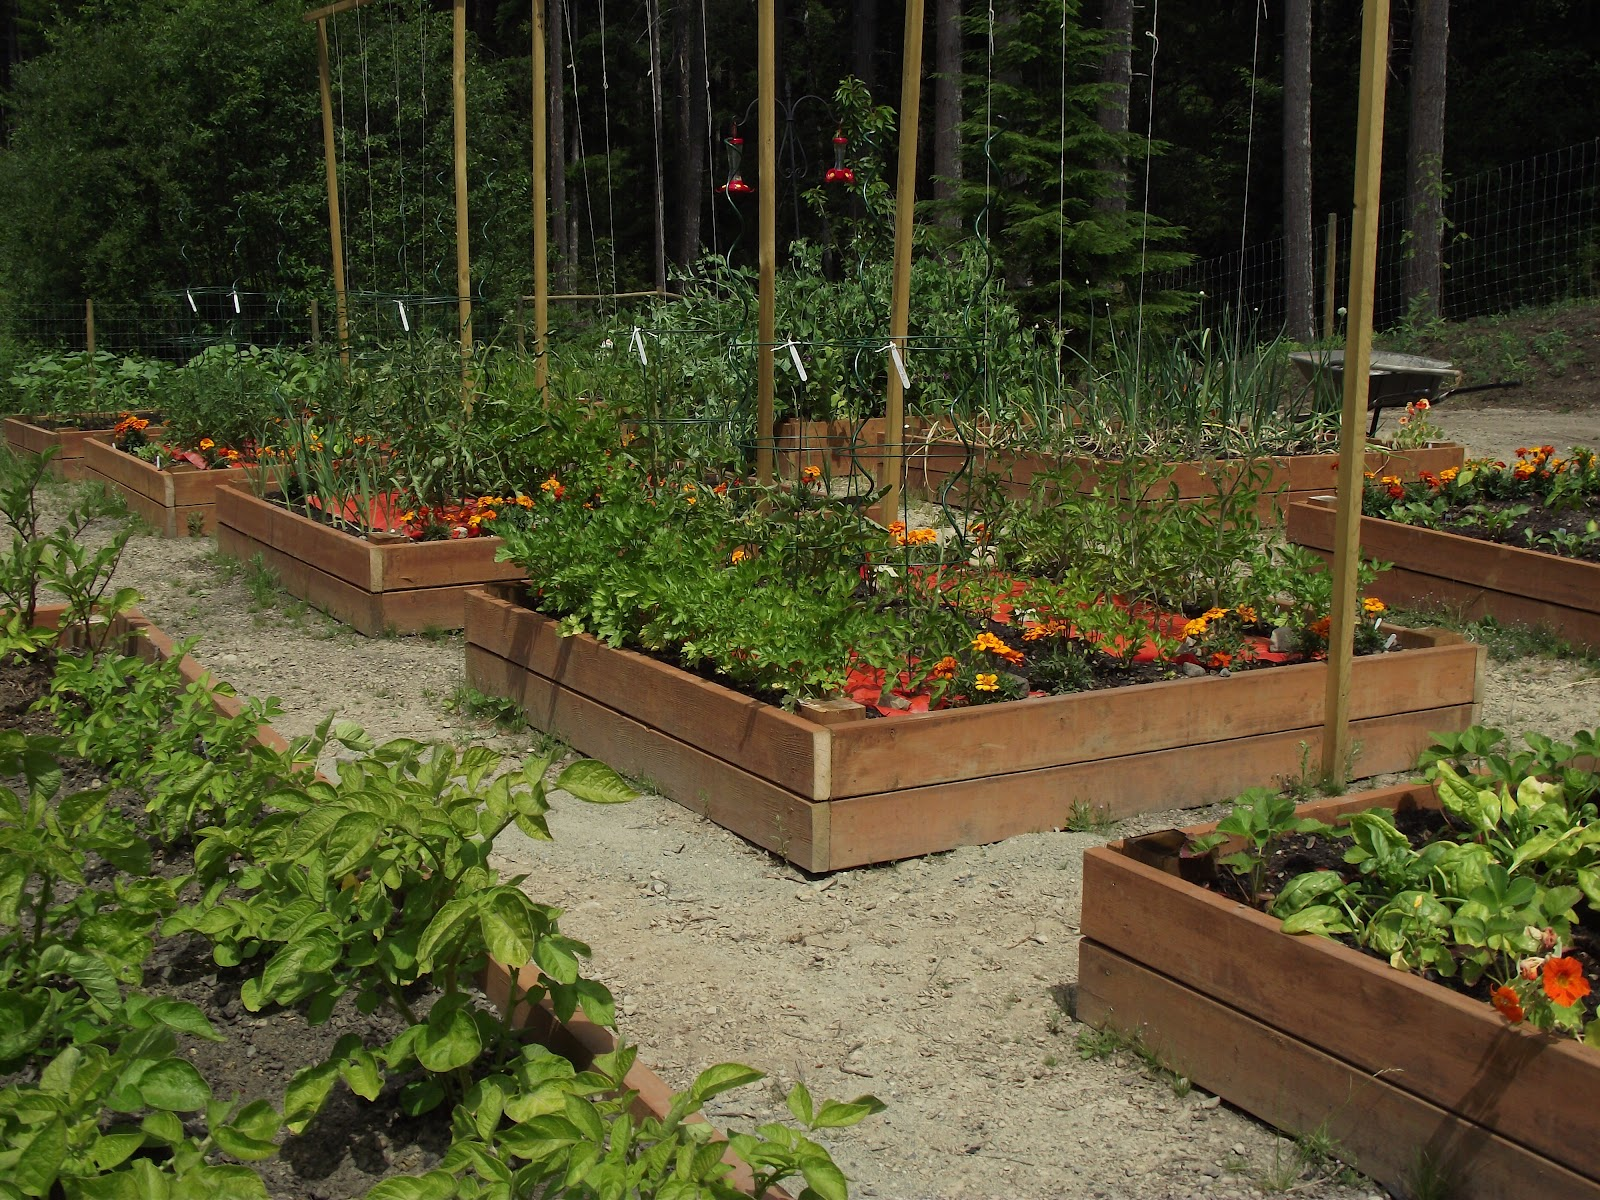 The Nitty Gritty Potager: For The Love of Potagers